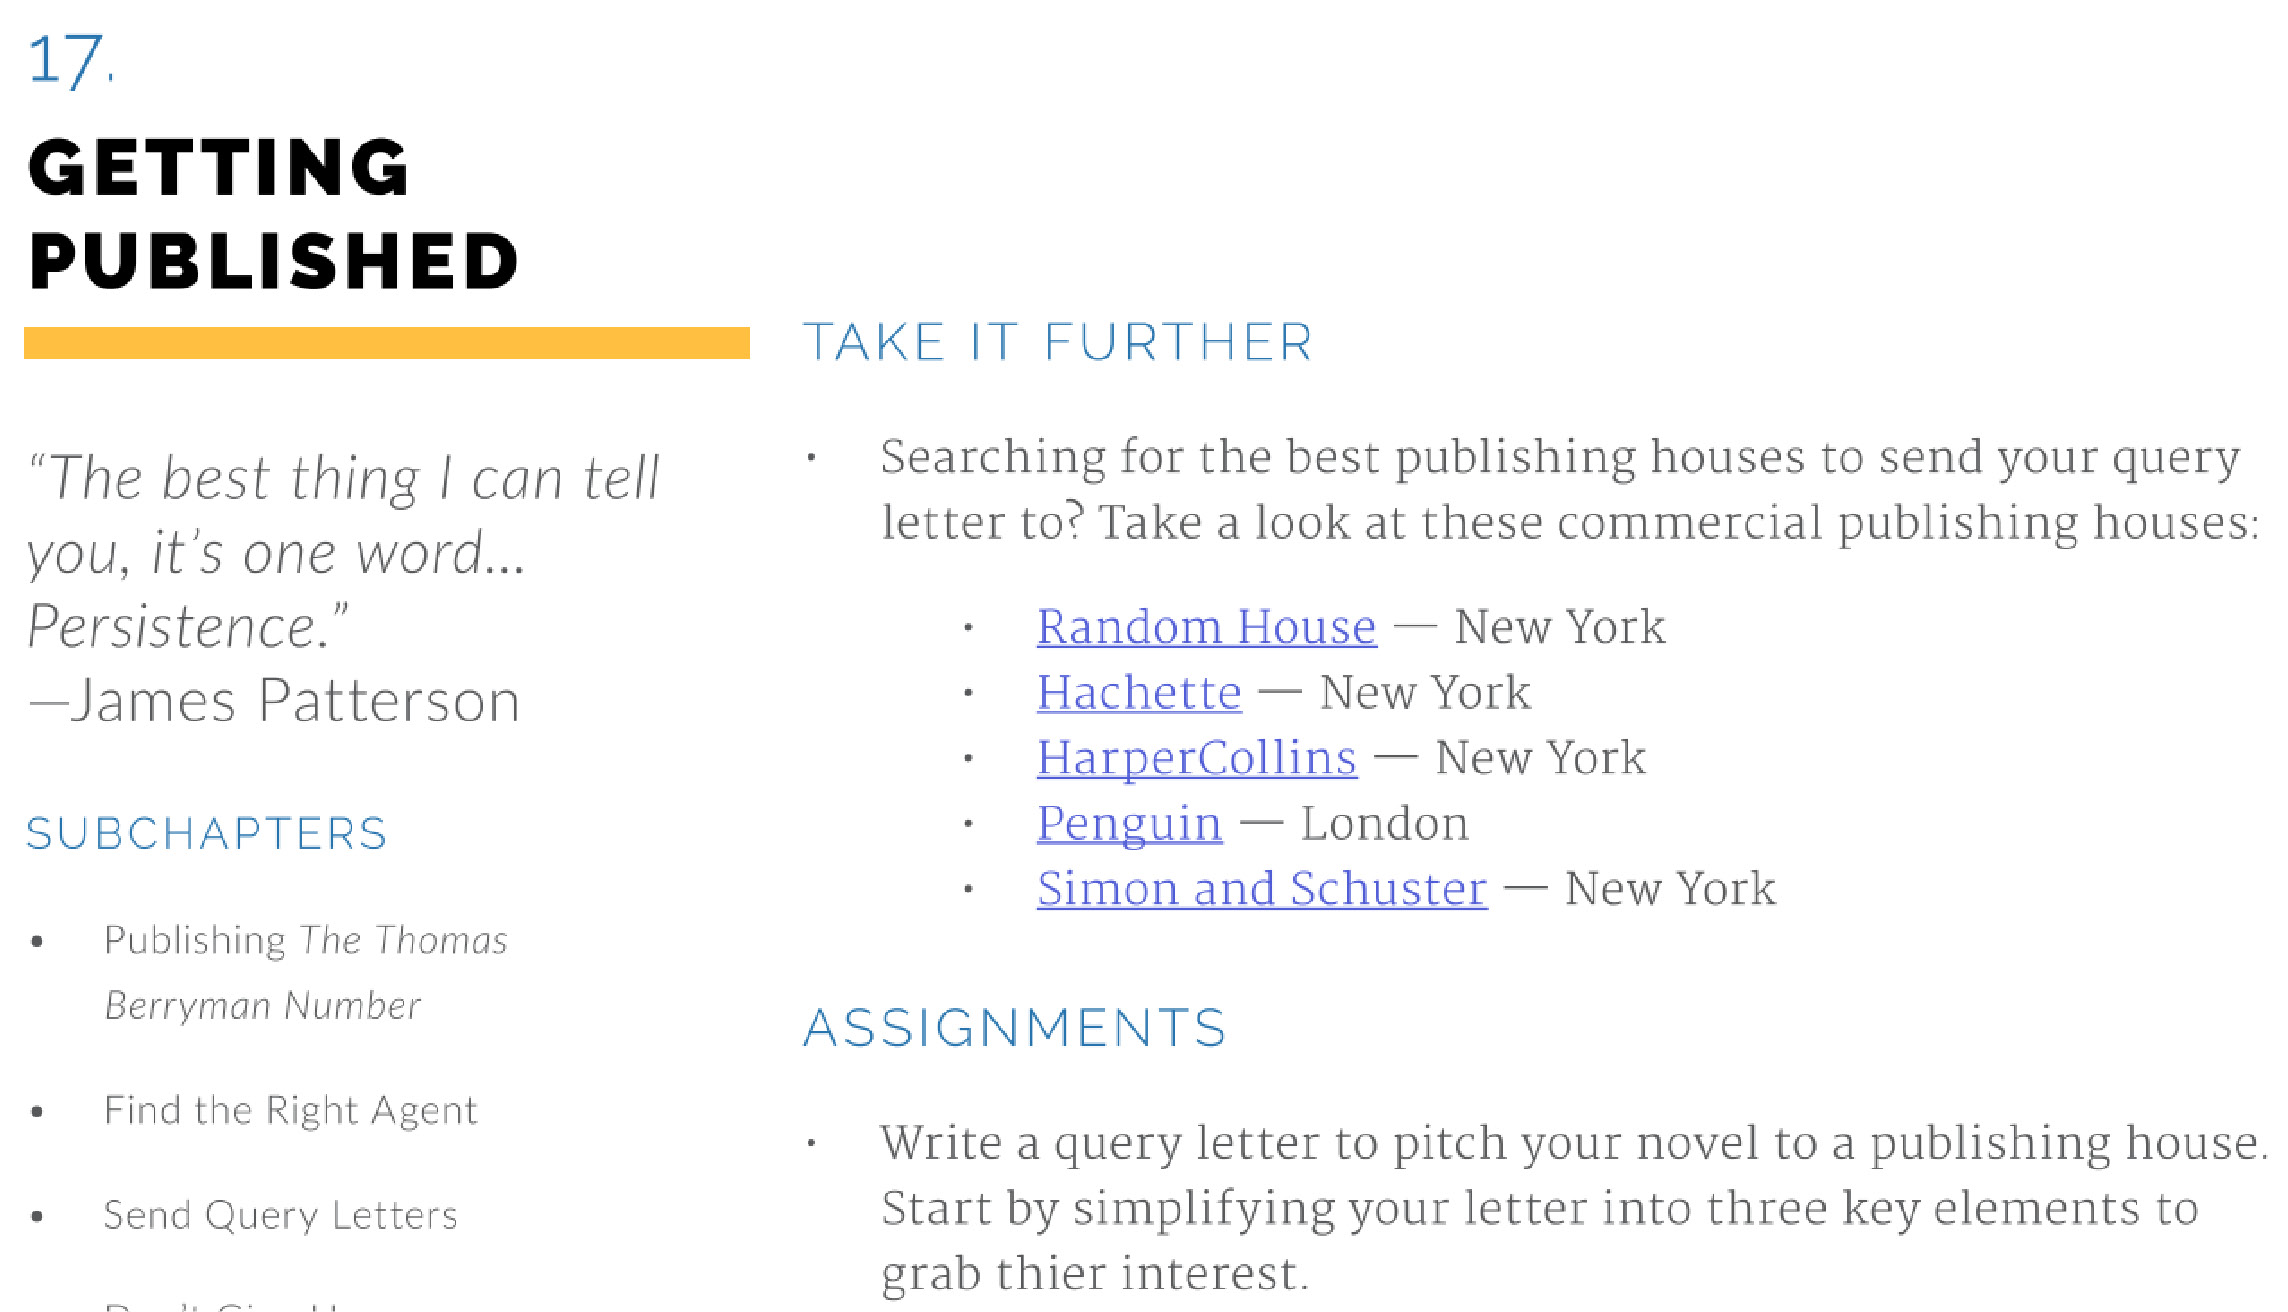 "Excerpt from 2016 version of 'James Patterson Teaches Writing Class Workbook', the class being a product of Masterclass. The excerpt reads, ""If you're searching for the best publishing houses to send your query letter, we've got you covered. Here are a few commercial publishing houses to look into: -Link to Random House -- New York -Link to Hachette -- New York -Link to HarperCollins -- New York -Link to Penguin -- London -Link to Simon and Schuster -- New York Assignment -Write a query letter to pitch your novel to a publishing house. Start by simplifying your letter into three key elements to grab thier [sic] interest."" The left-hand column beside this mentions ""Find the Right Agent"" so it seems like those involved in writing this workbook know that an agent can be necessary, but those involved in writing this book don't seem to know the Big 5 rarely take submissions if the author doesn't have an agent."